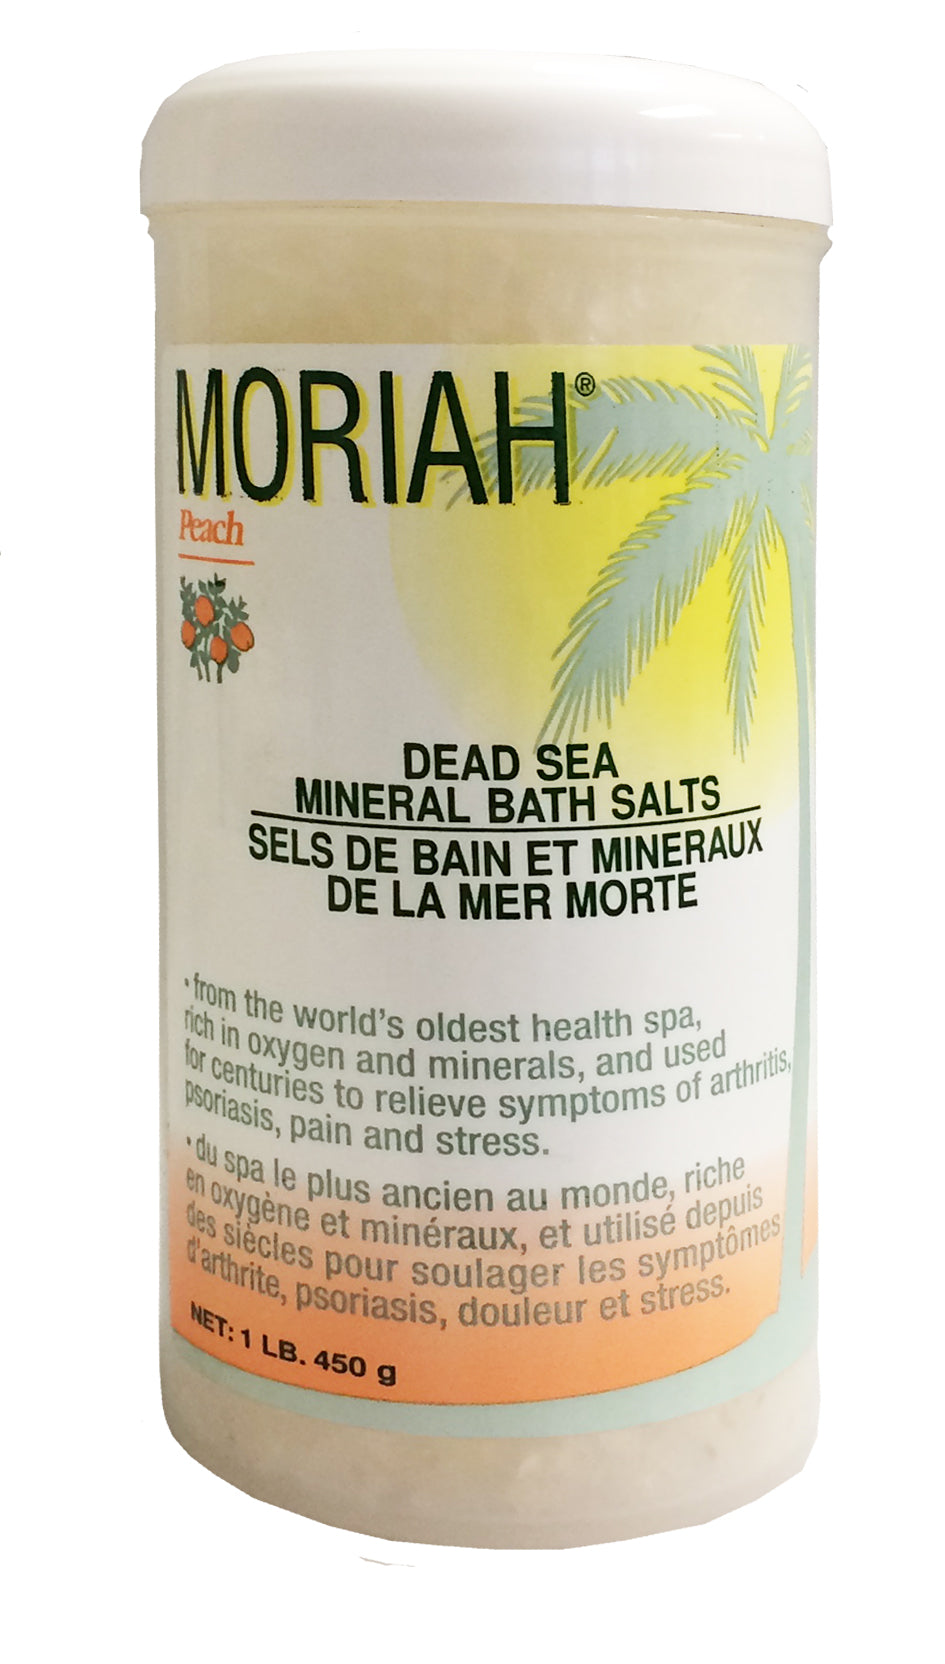 Moriah Bath Salts, Peach, 450g Jar